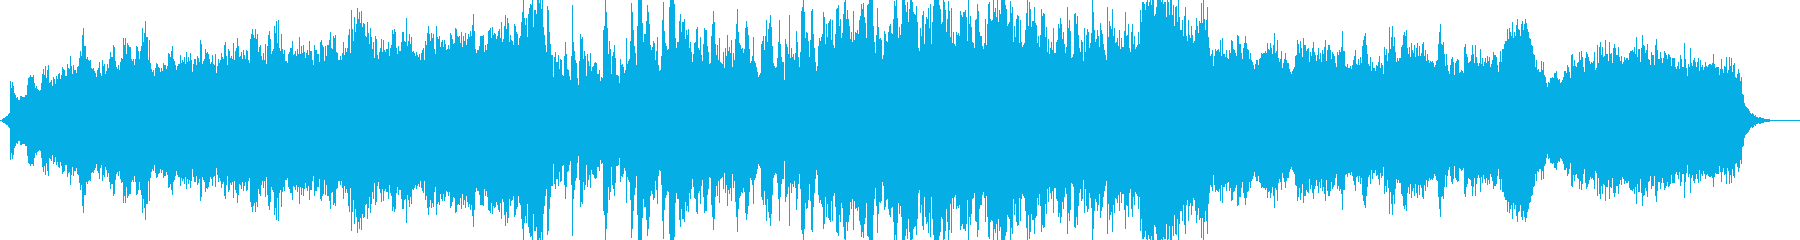 Historic / Drama / SPRG / OP / PV's reproduced waveform